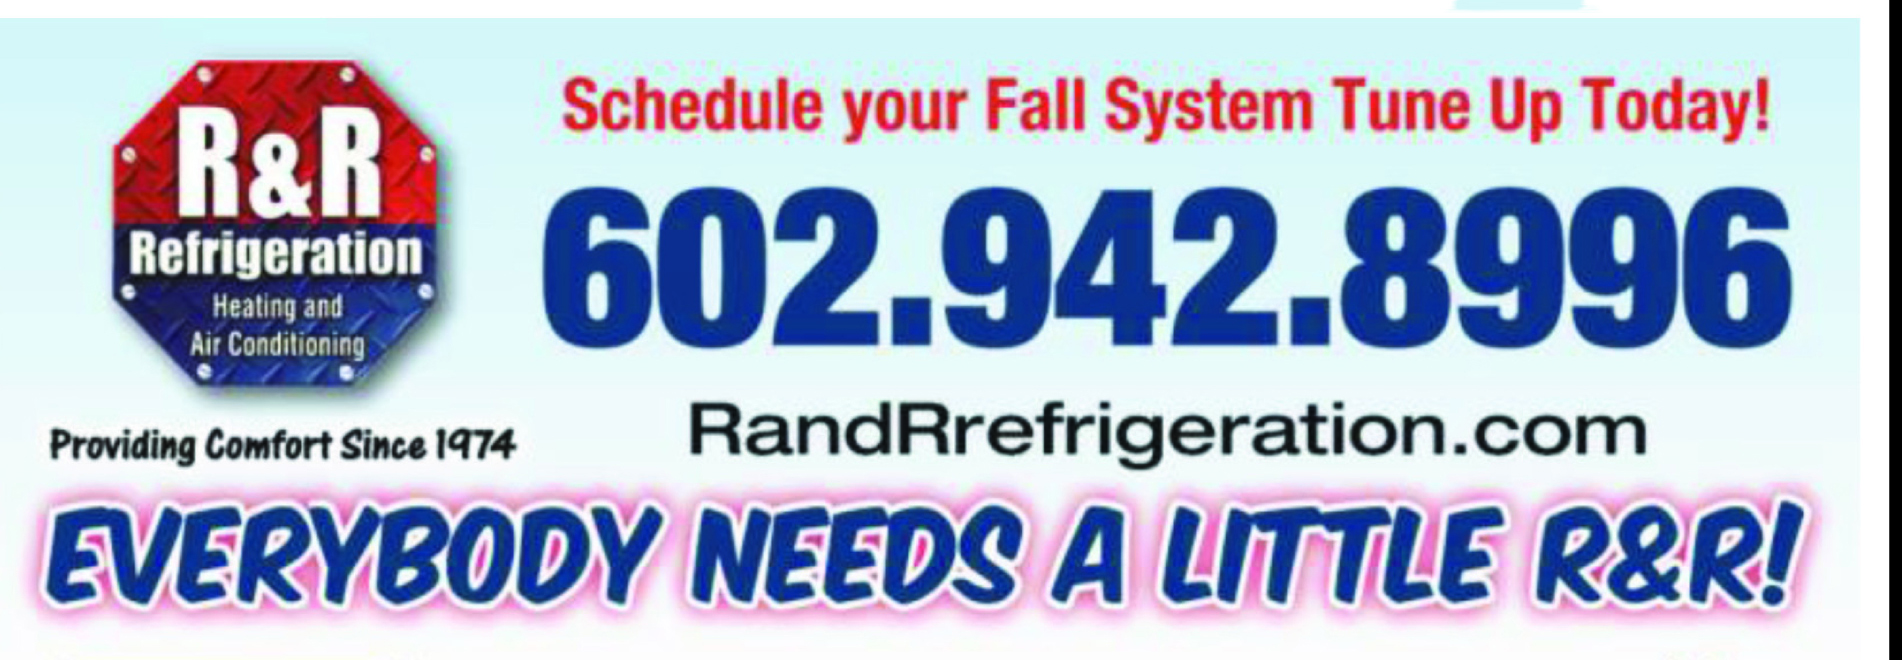 Fall-Flyer-R&R_Refrigeration-PhoenixAZ.jpg